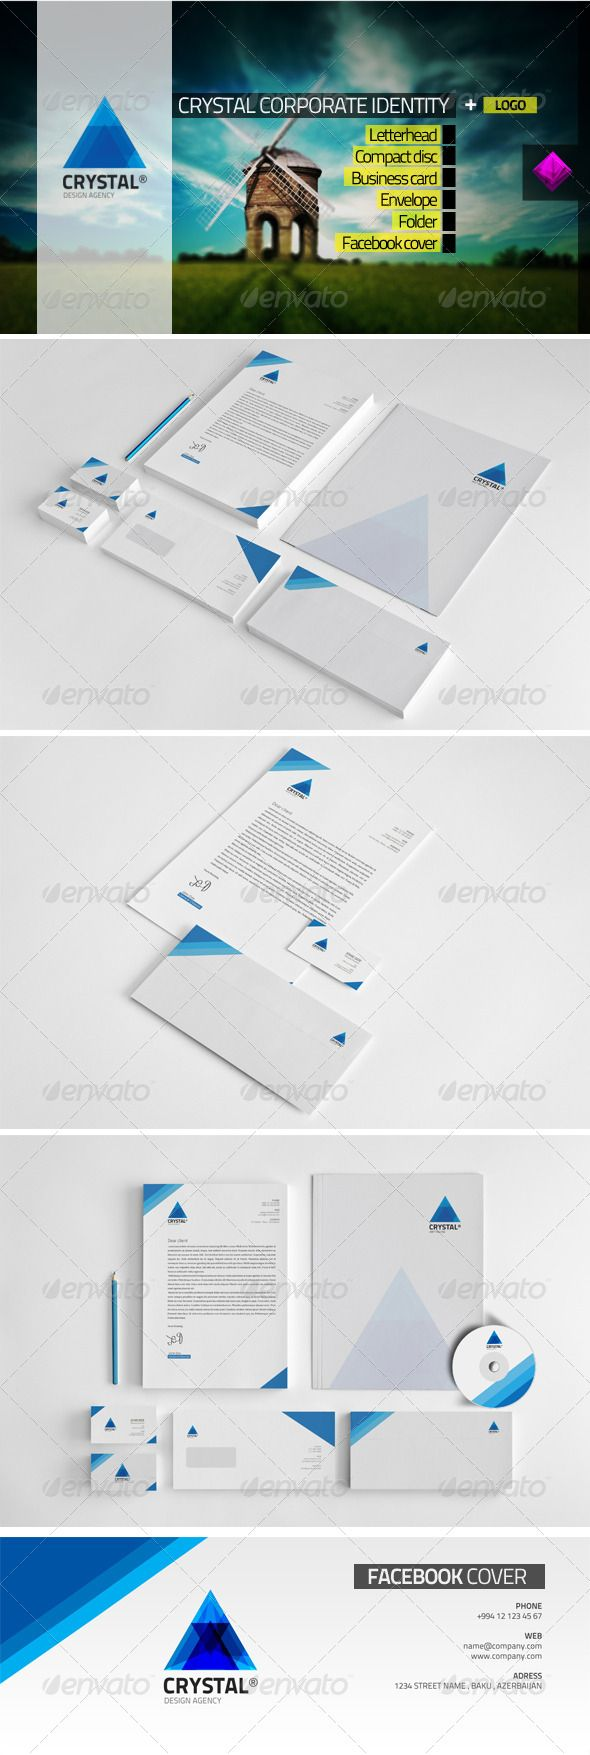 Crystal Corporate Identity GraphicRiver Specifications